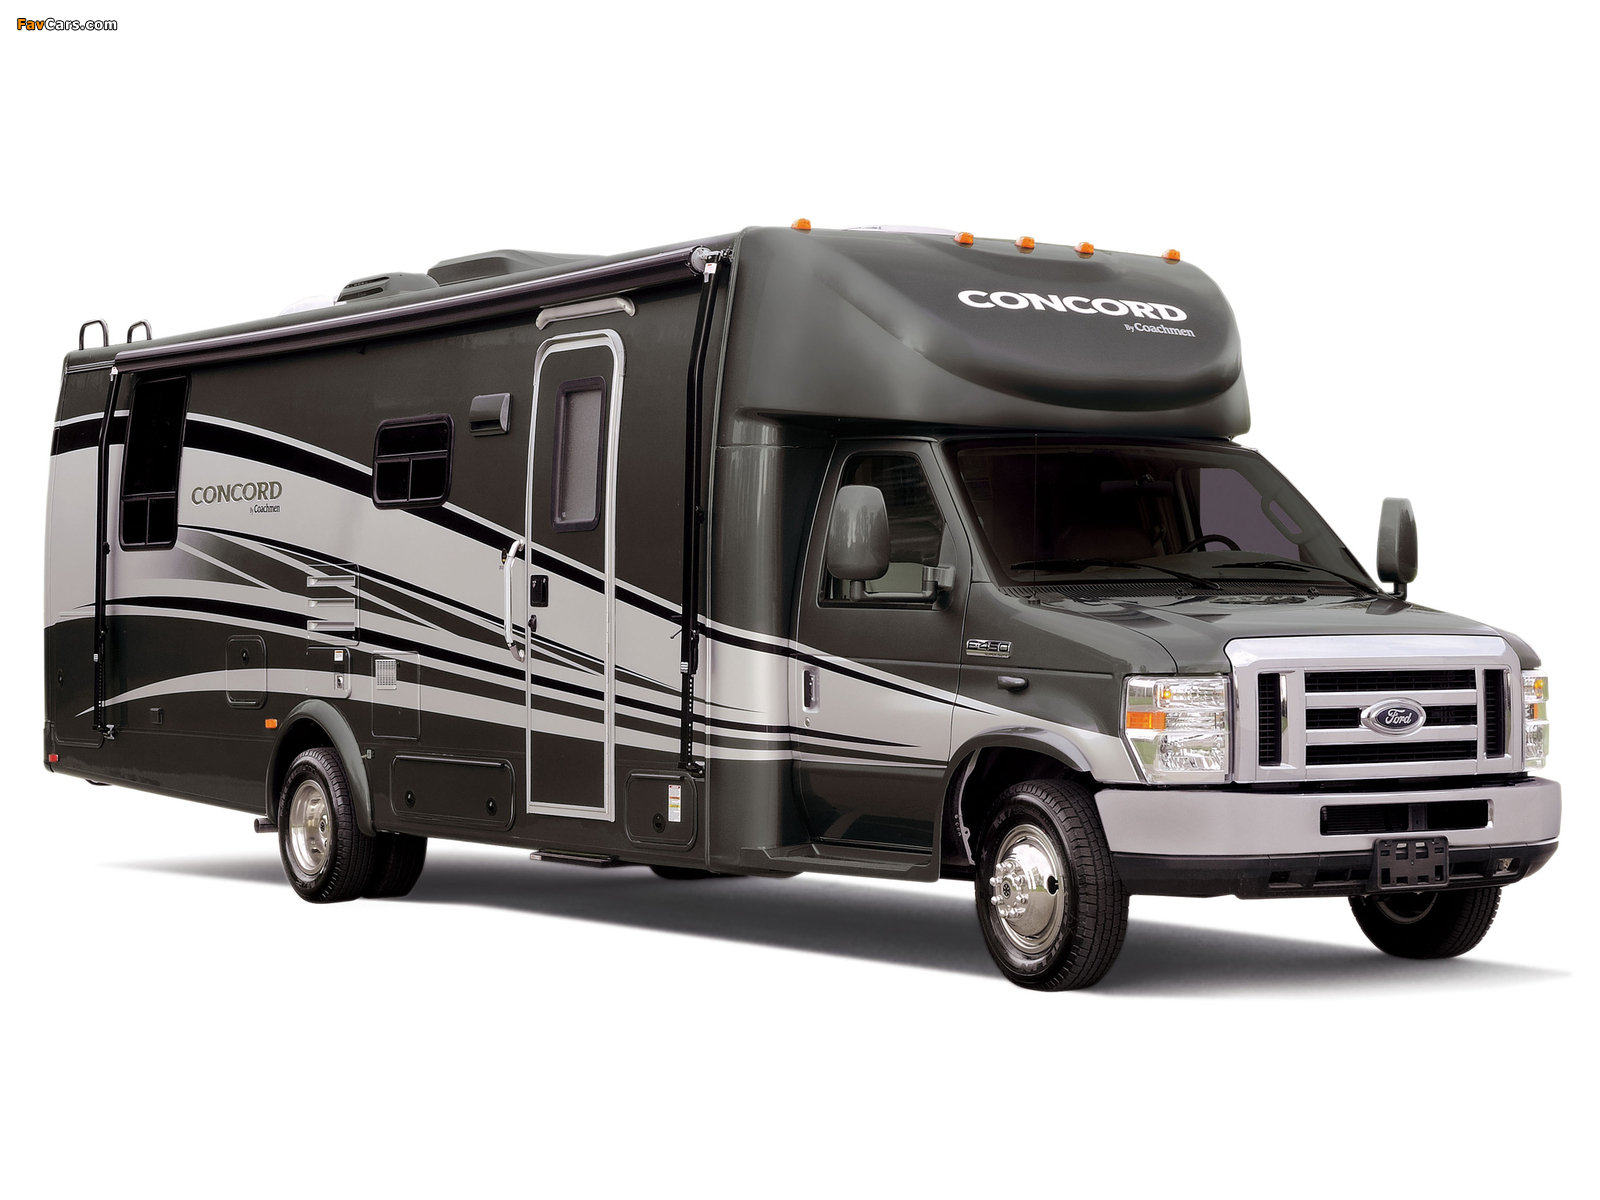 Images of Coachmen Concord 300 TS 2011 (1600 x 1200)